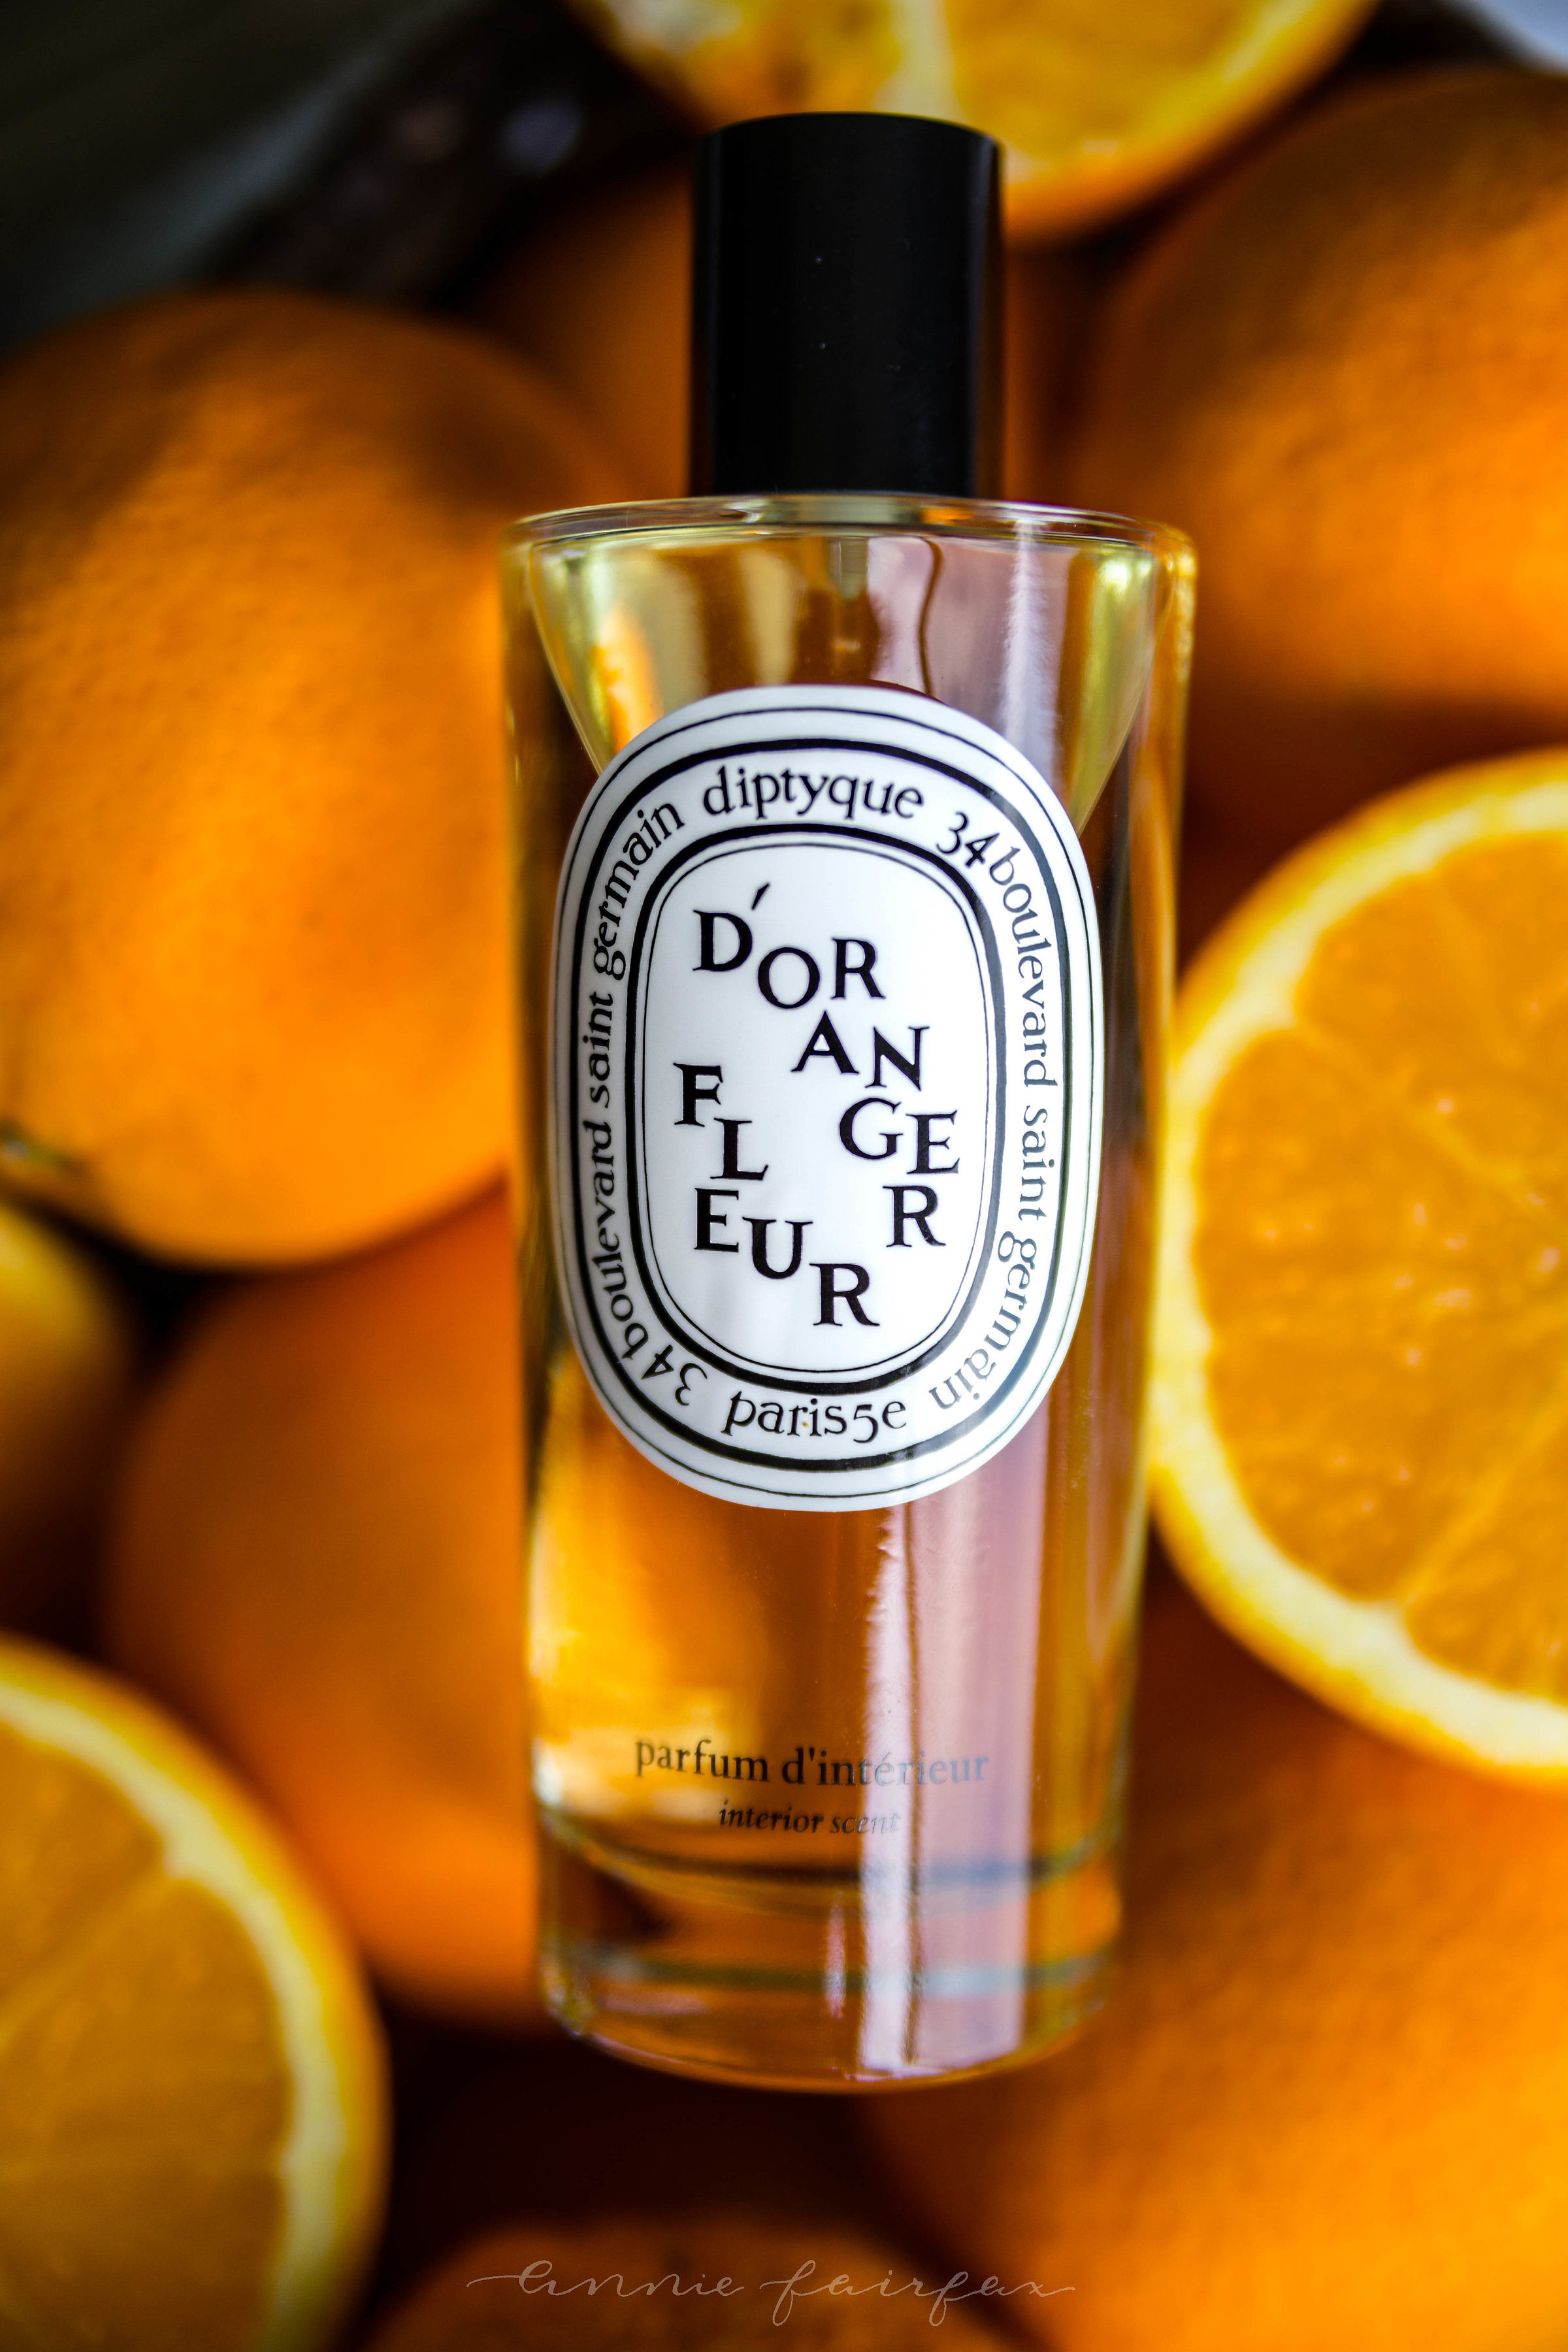 Diptyque Perfume Collection and Review of Orange Blossom Fragrance